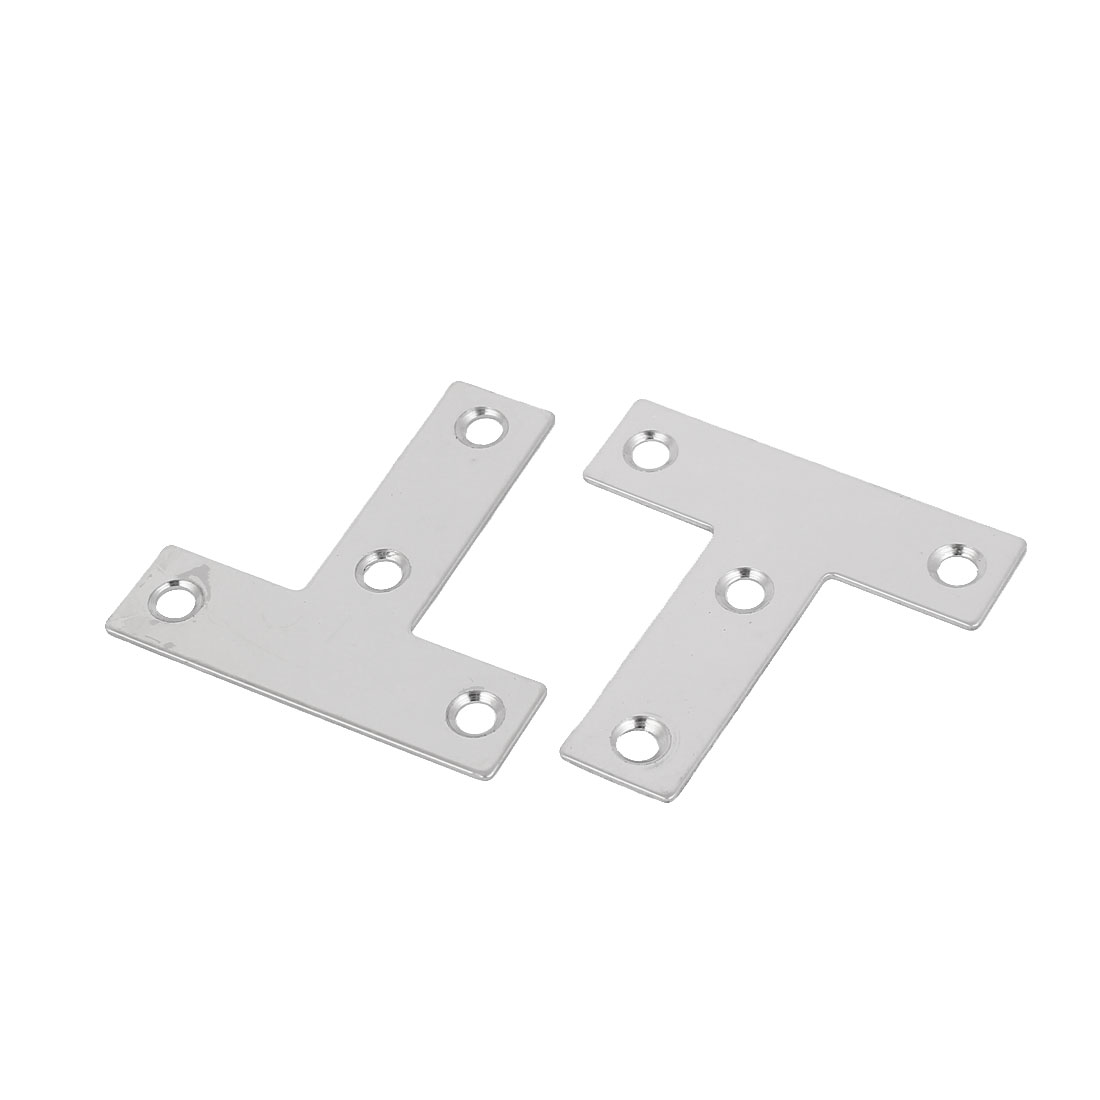 50mmx50mm T Shaped Stainless Steel Angle Bracket Corner Brace Silver Tone 2 Pcs